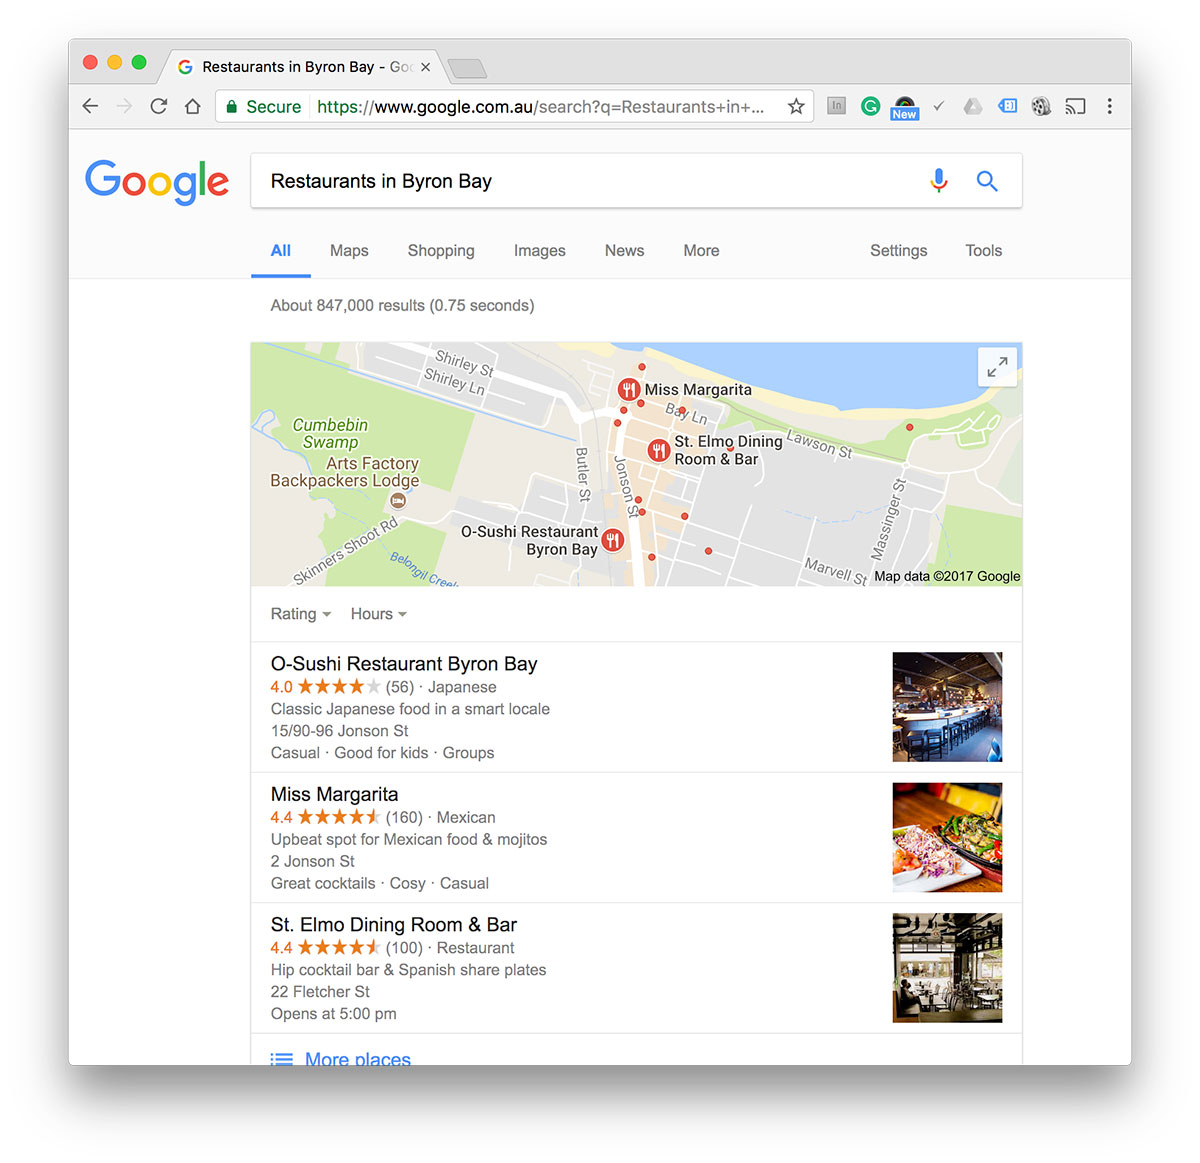 map-local-seo-byron-bay-nsw-robert-mullineux